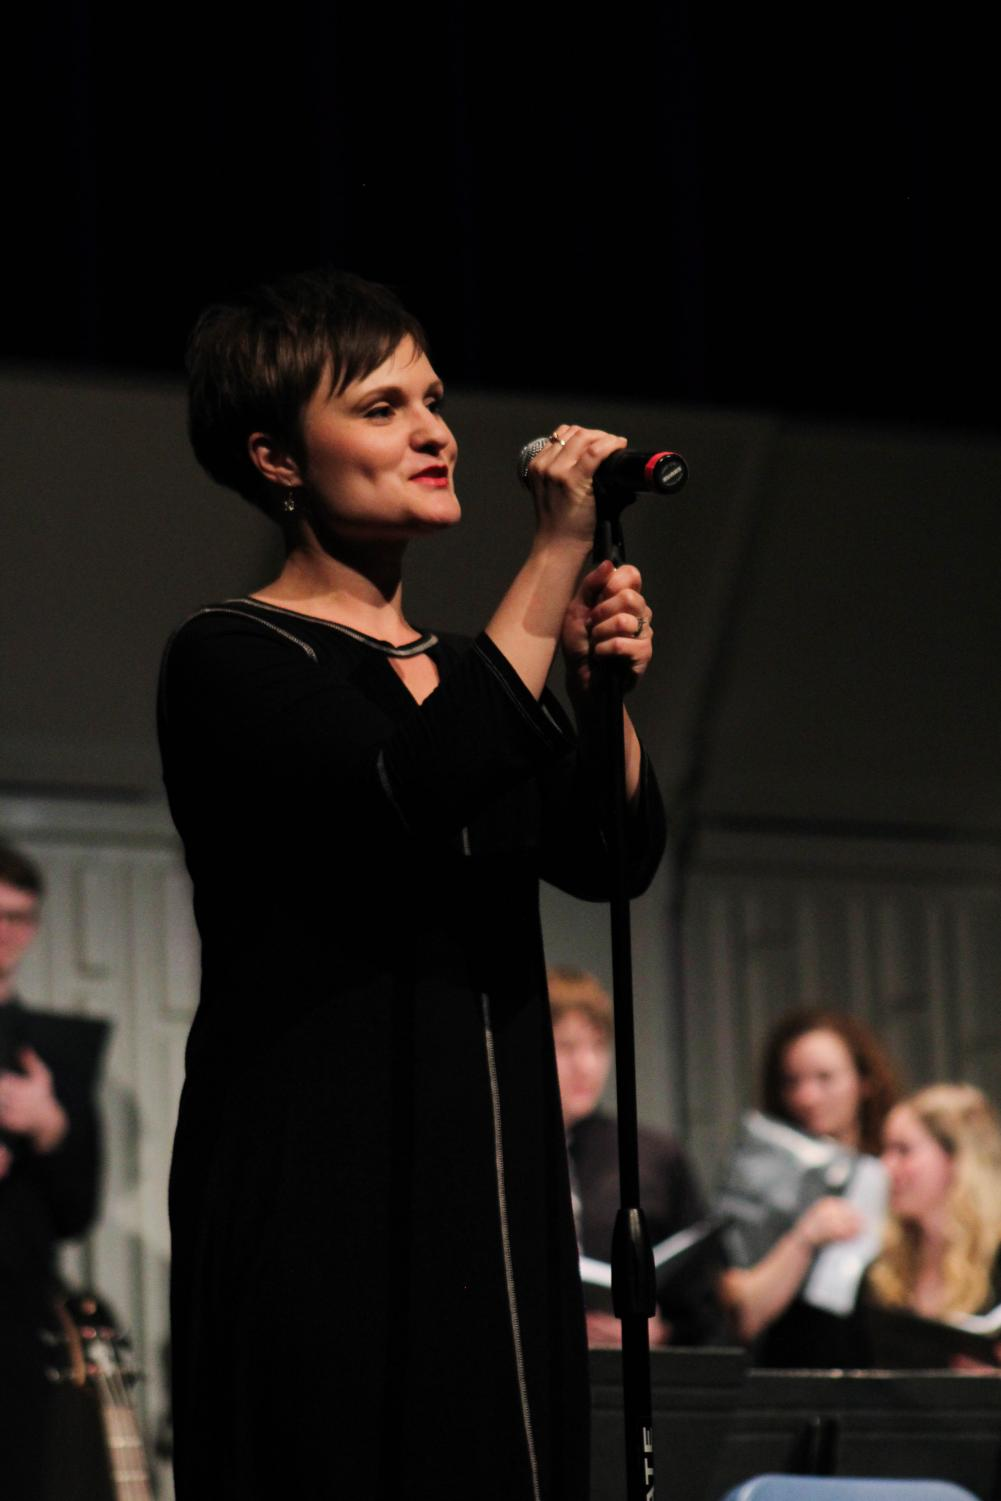 Adrienne+Fleming%2C+of+Allen+Community+College%2C+directed+%22Skyfall%22+performed+by+the+combined+choir.